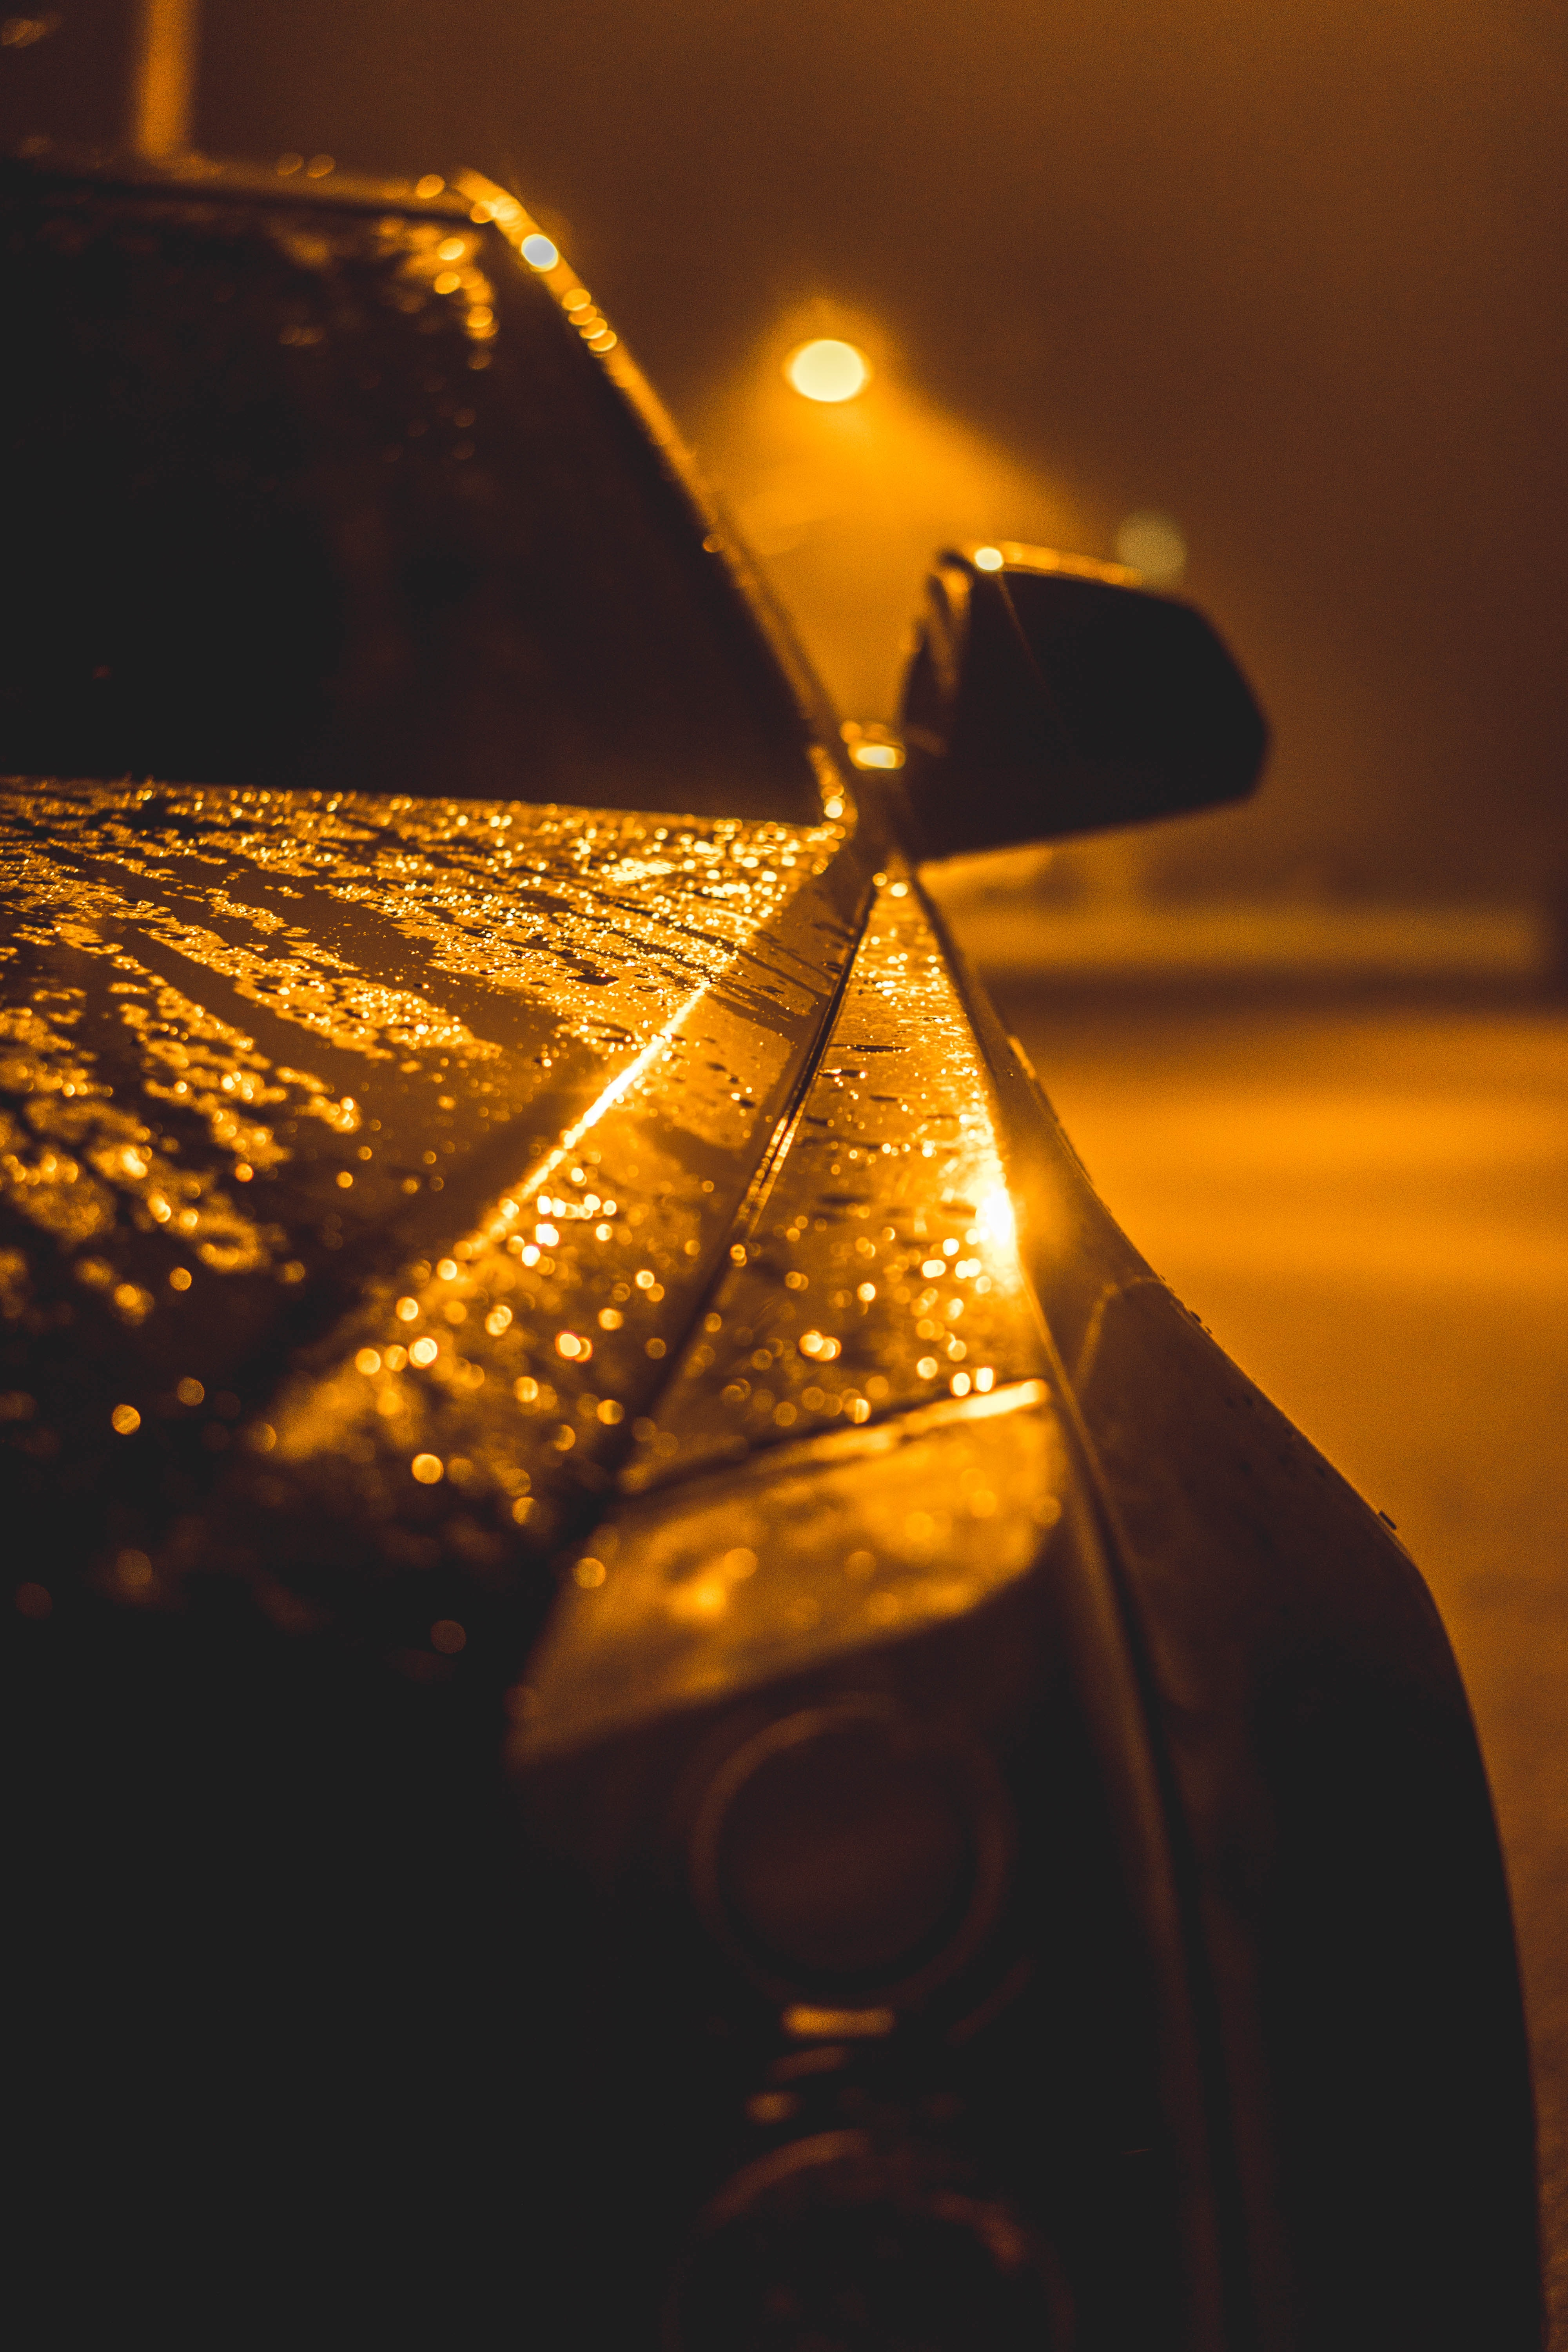 The engine bonnet of a car soaked in rain.